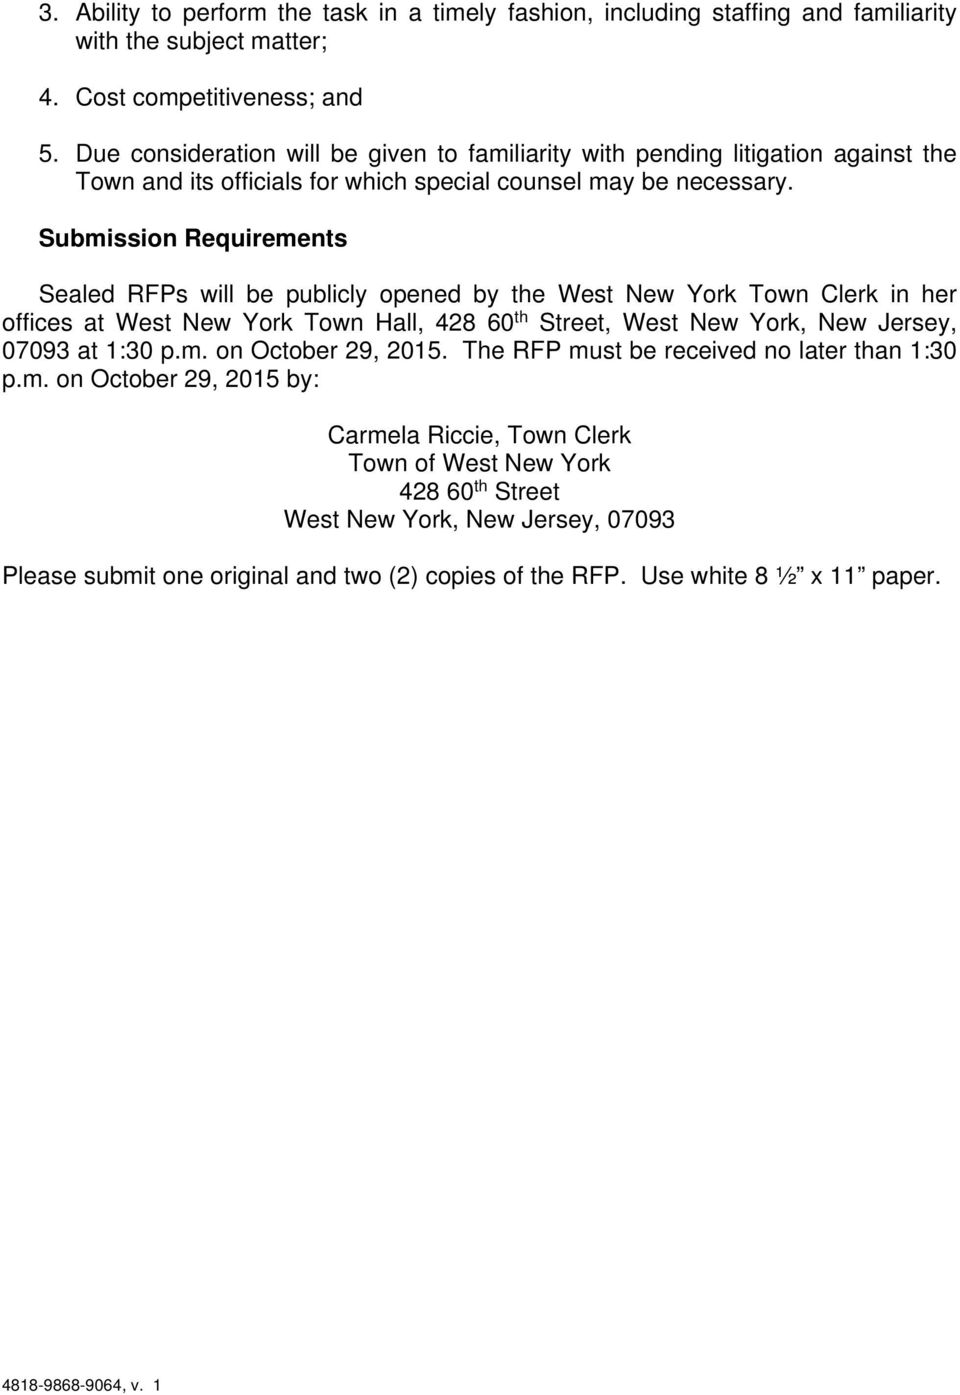 Submission Requirements Sealed RFPs will be publicly opened by the West New York Town Clerk in her offices at West New York Town Hall, 428 60 th Street, West New York, New Jersey, 07093 at